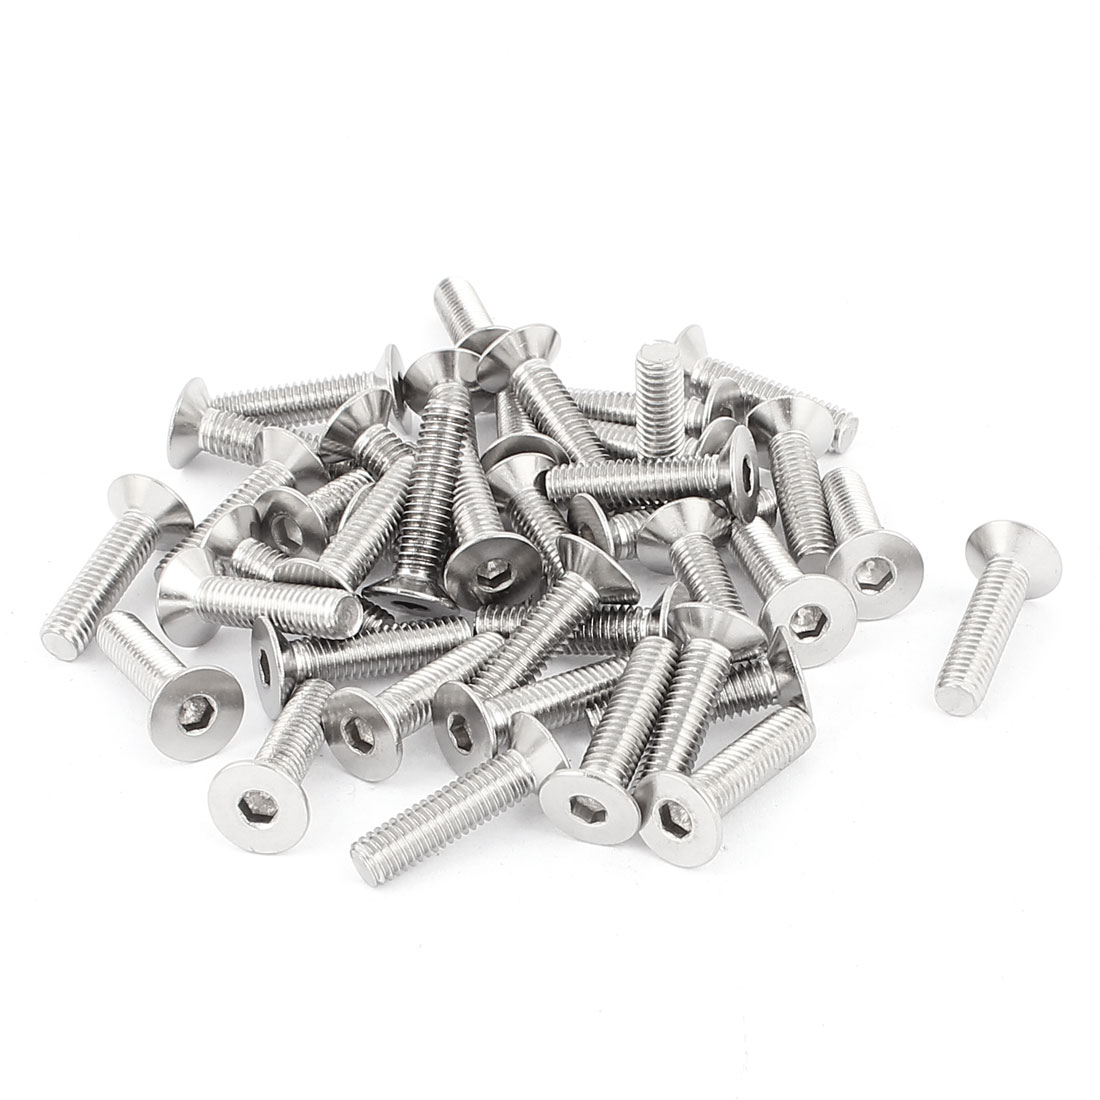 M6 x 25mm Countersunk Flat Head Hex Socket Screw Bolt DIN 7991 Silver Tone 40 Pcs